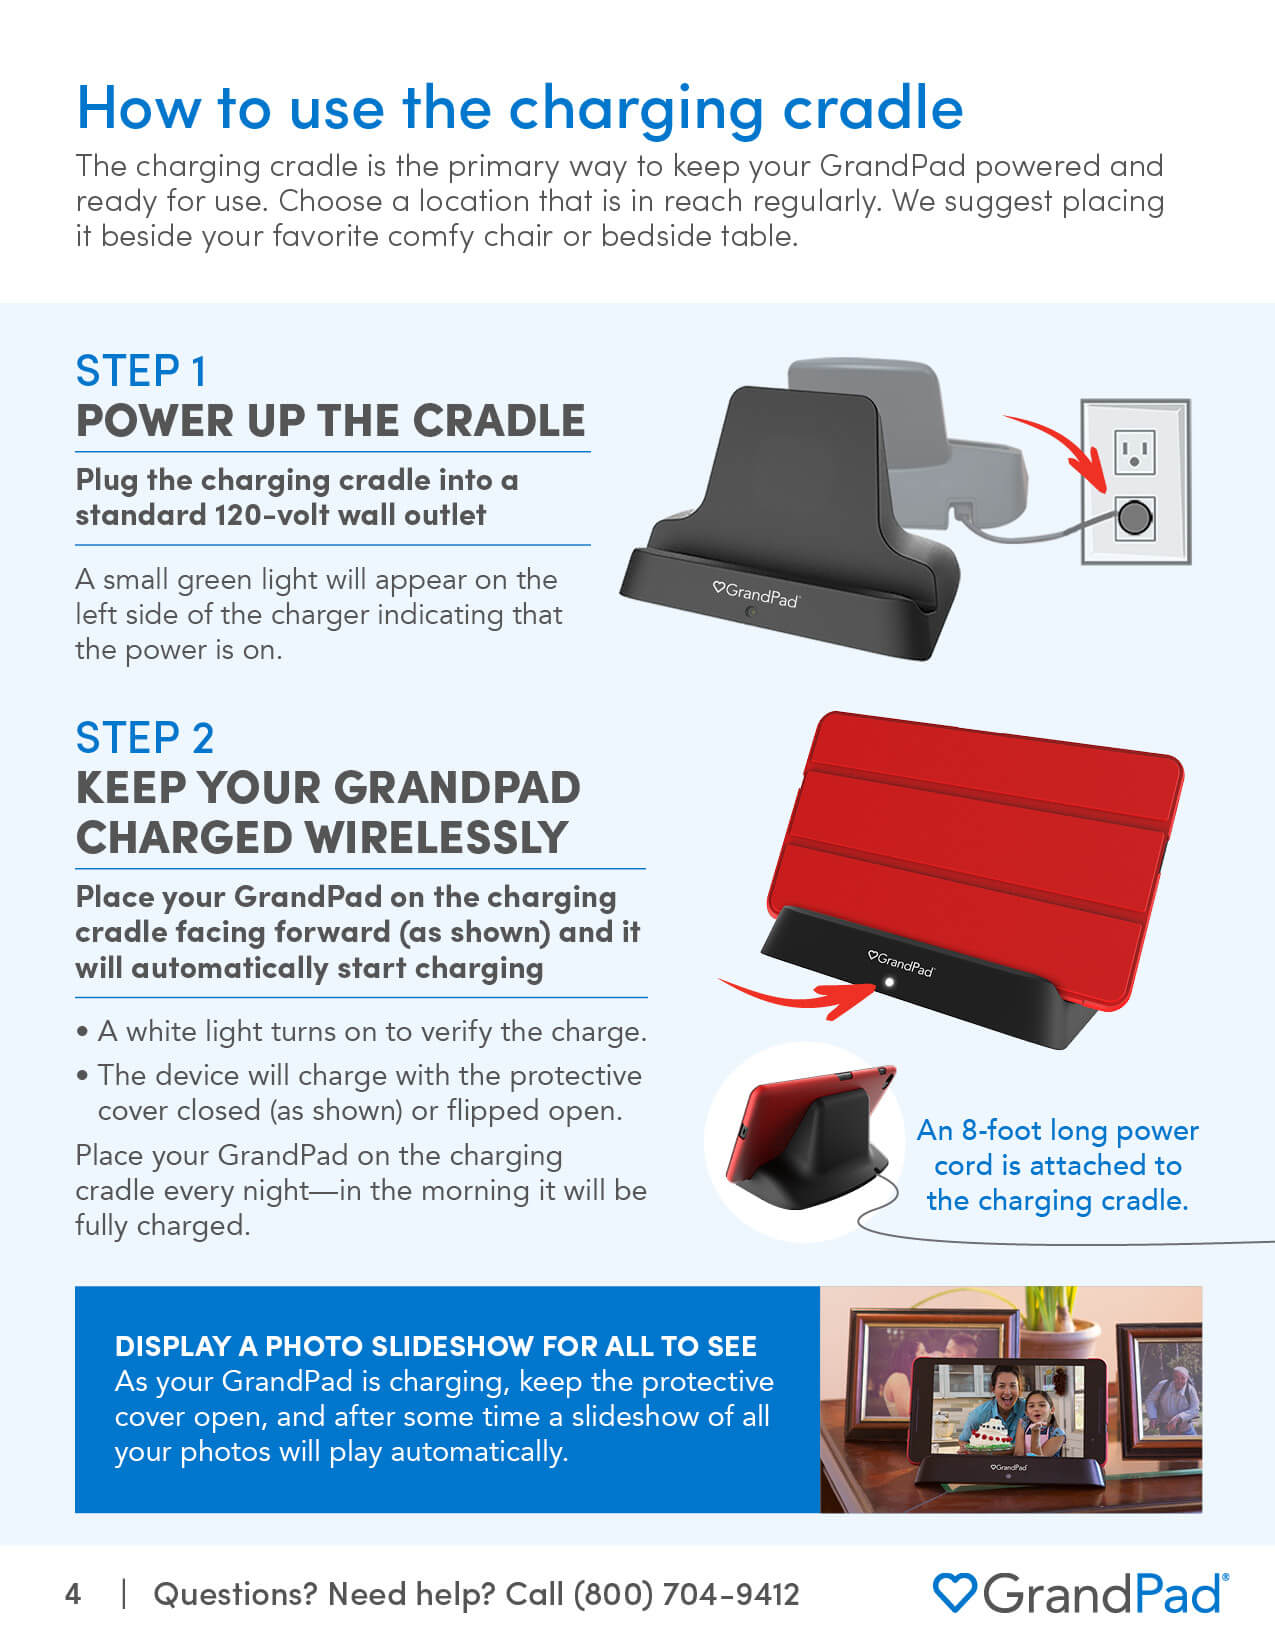 Instructions on how to use the charging creadle